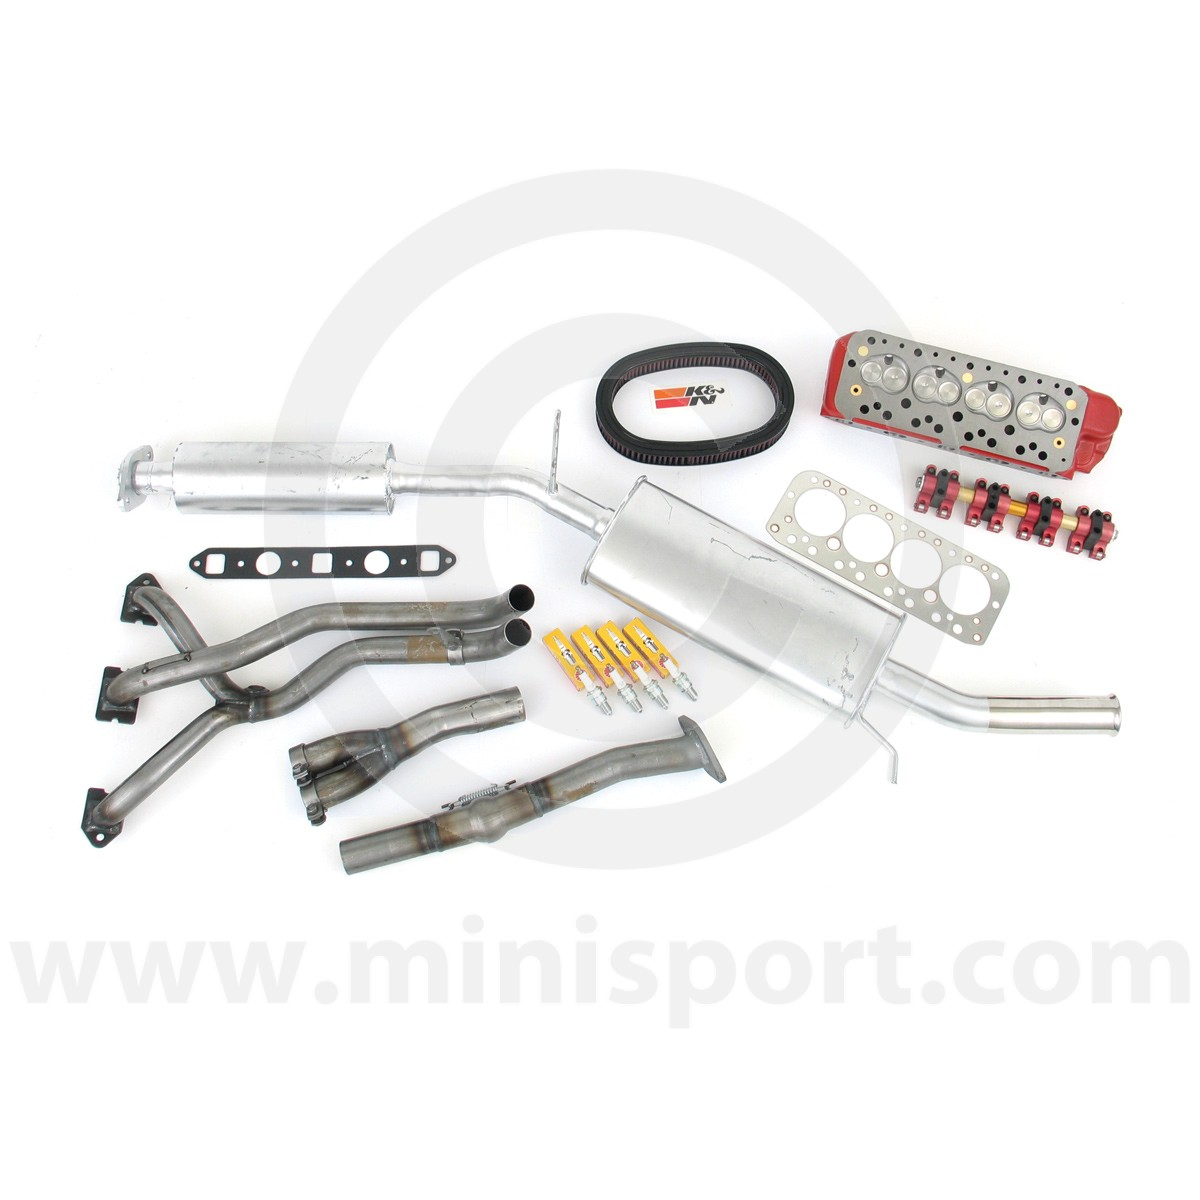 hight resolution of stage 3 tuning kit 1275 spi 85bhp